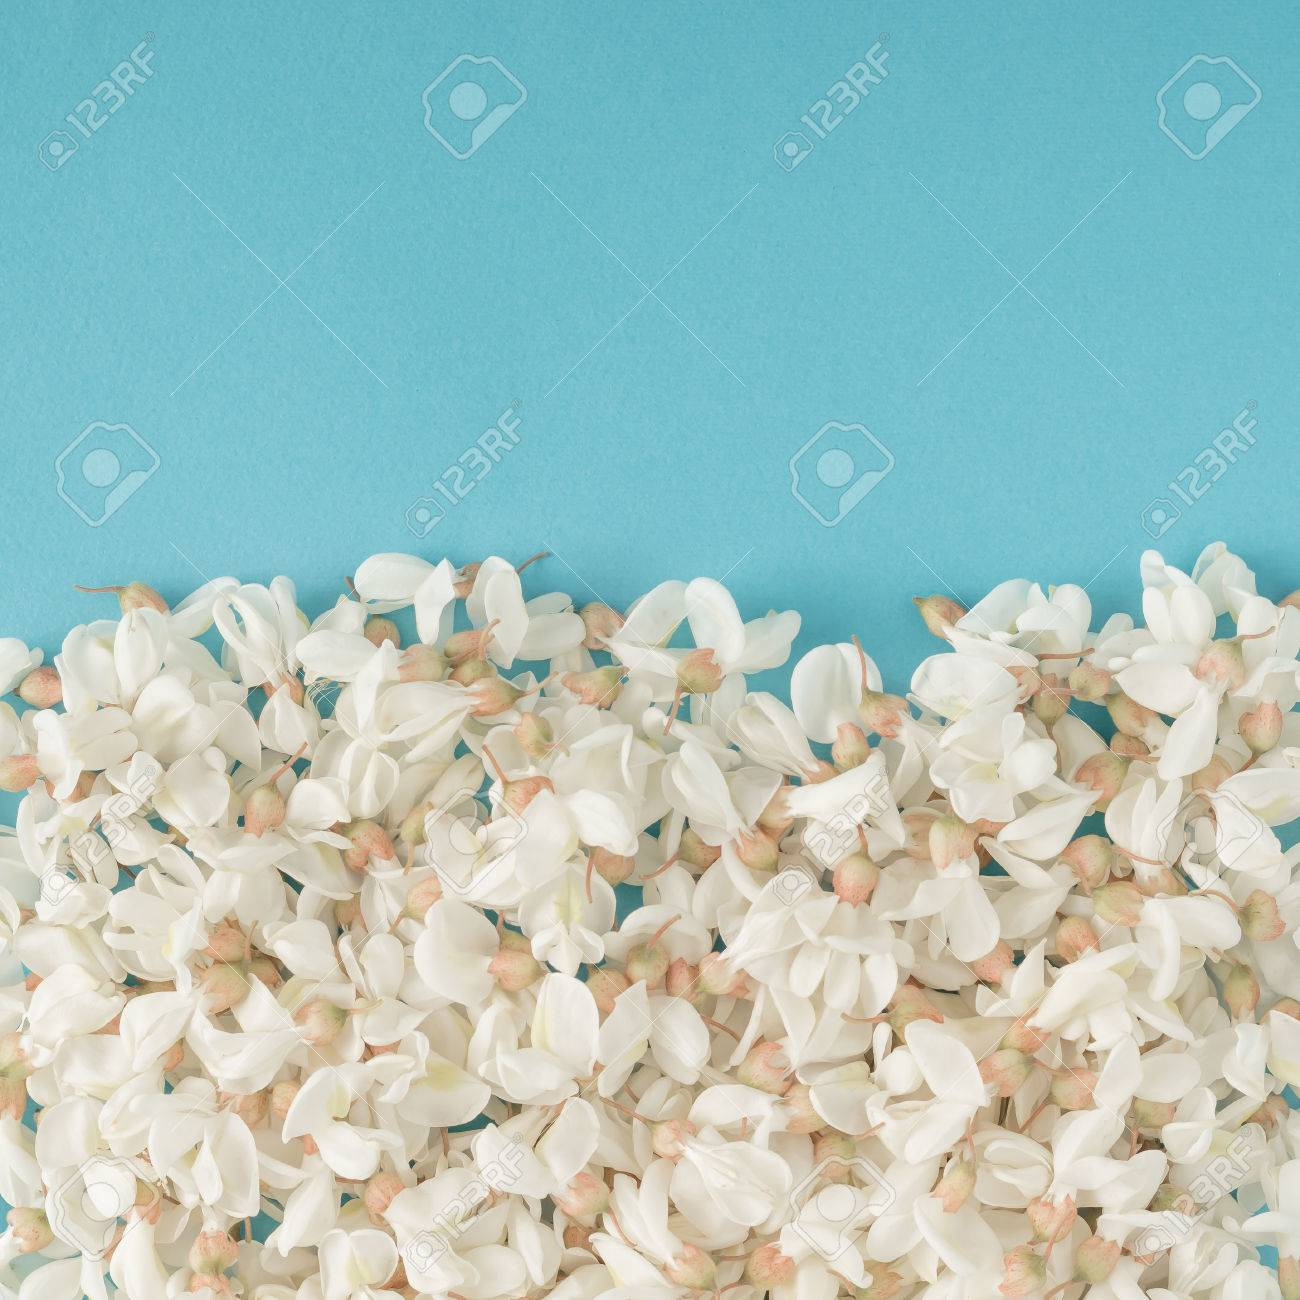 White flowers on blue background. Flat lay - 71478392